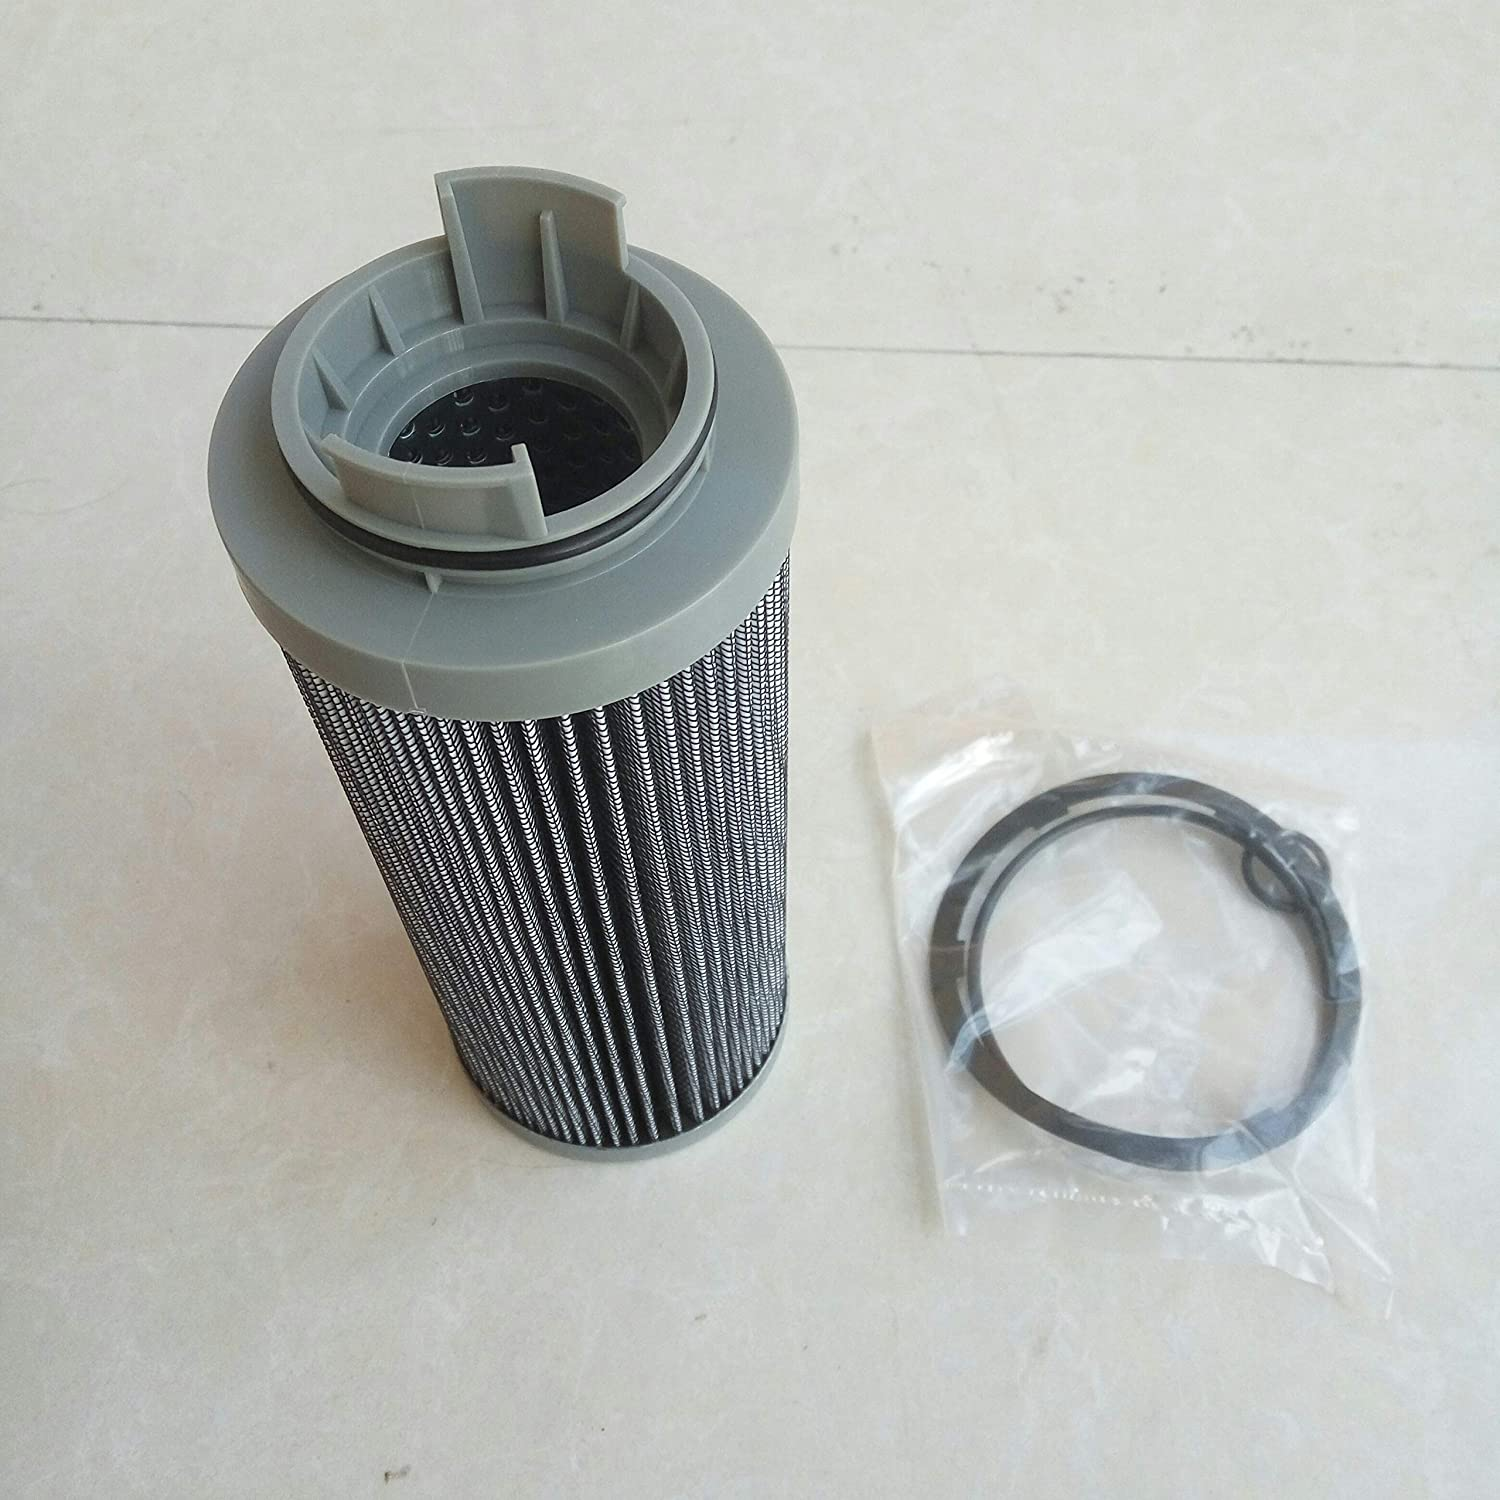 23935059 Oil Filter Element Cartridge for Ingersoll Rand Air Compressor Part R37 45